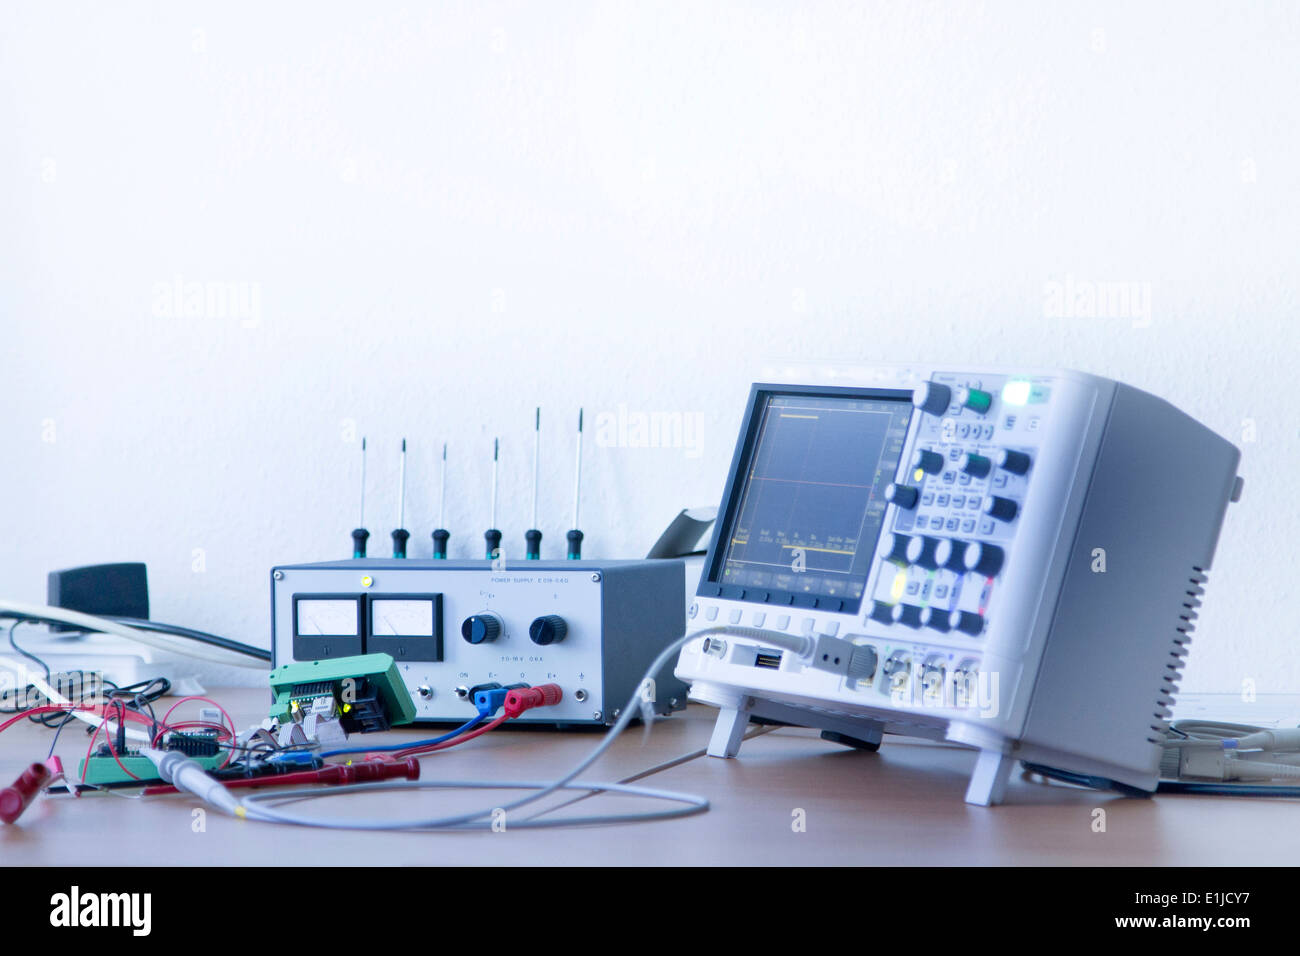 Germany, Electronic instruments of measurement in workshop - Stock Image